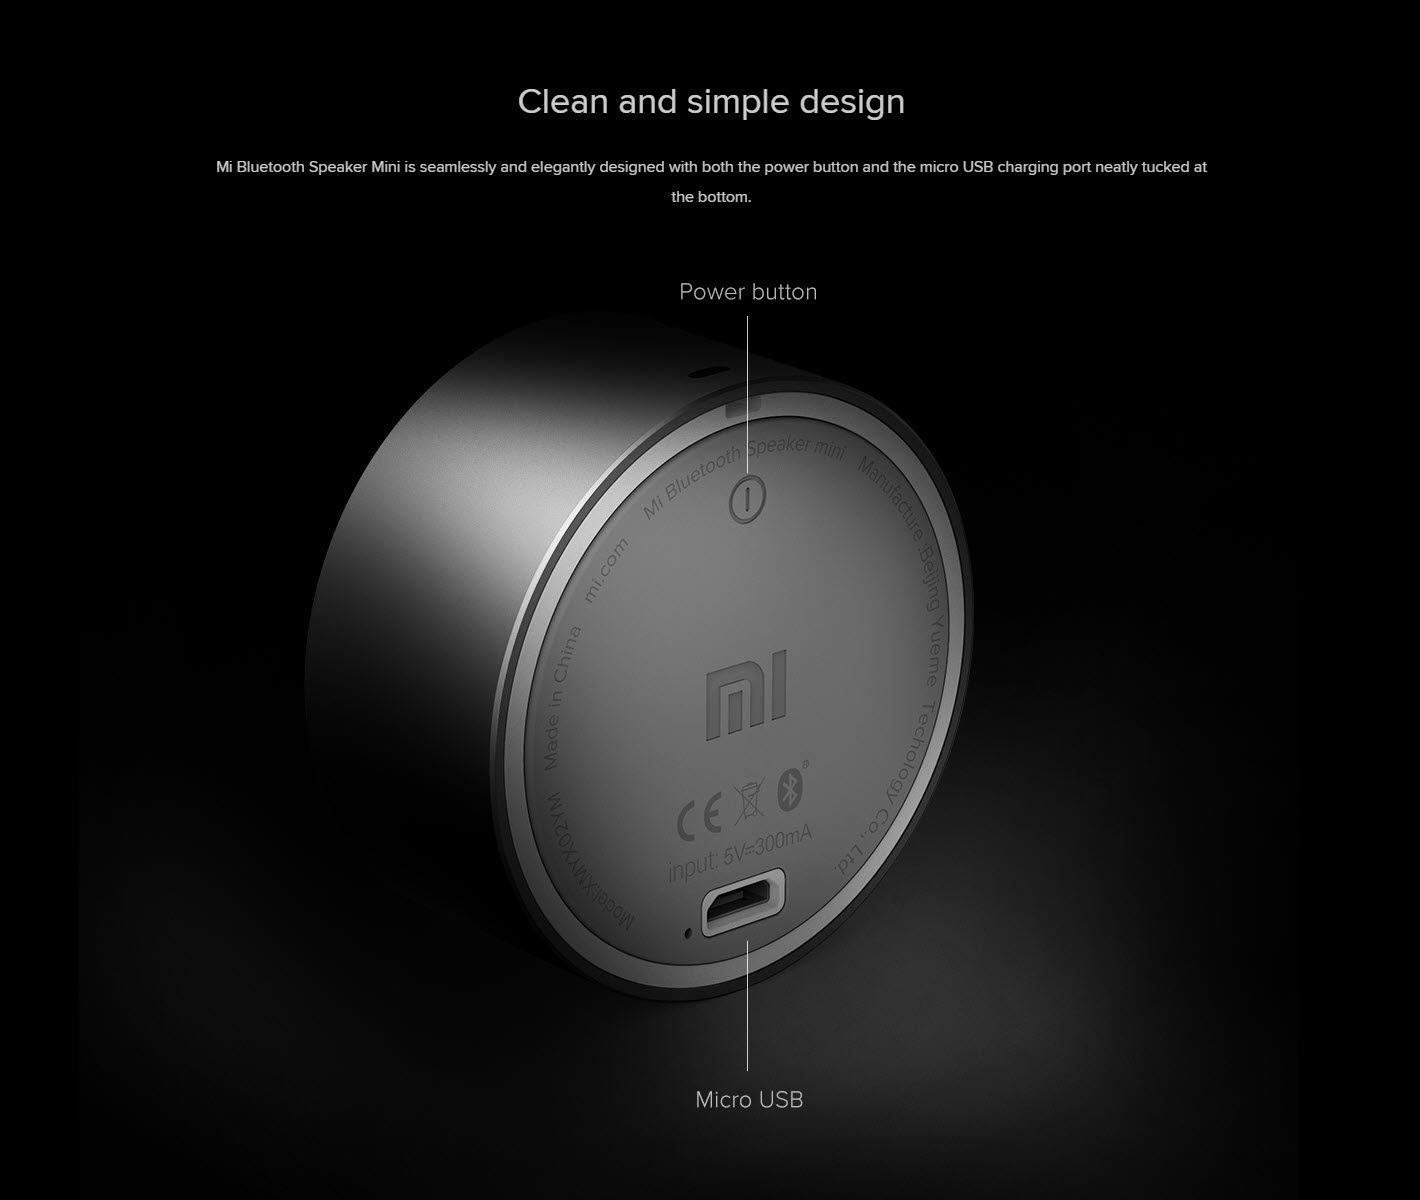 Mi Bluetooth Speaker Mini (30)